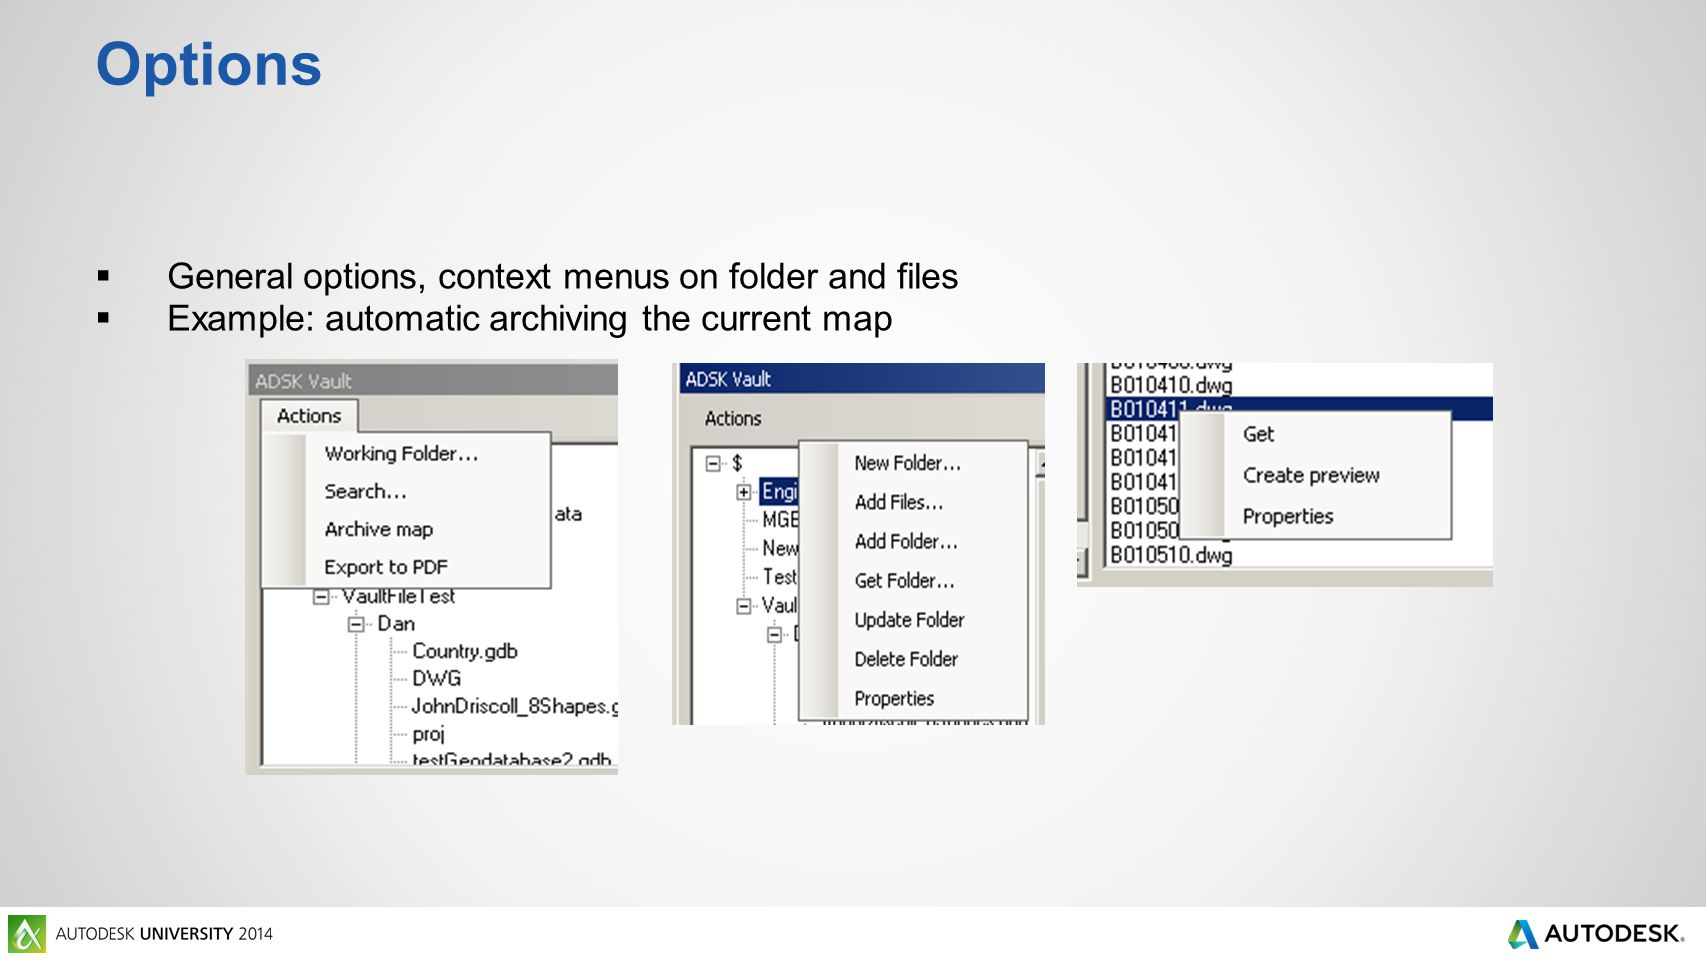 Options  General options, context menus on folder and files  Example: automatic archiving the current map